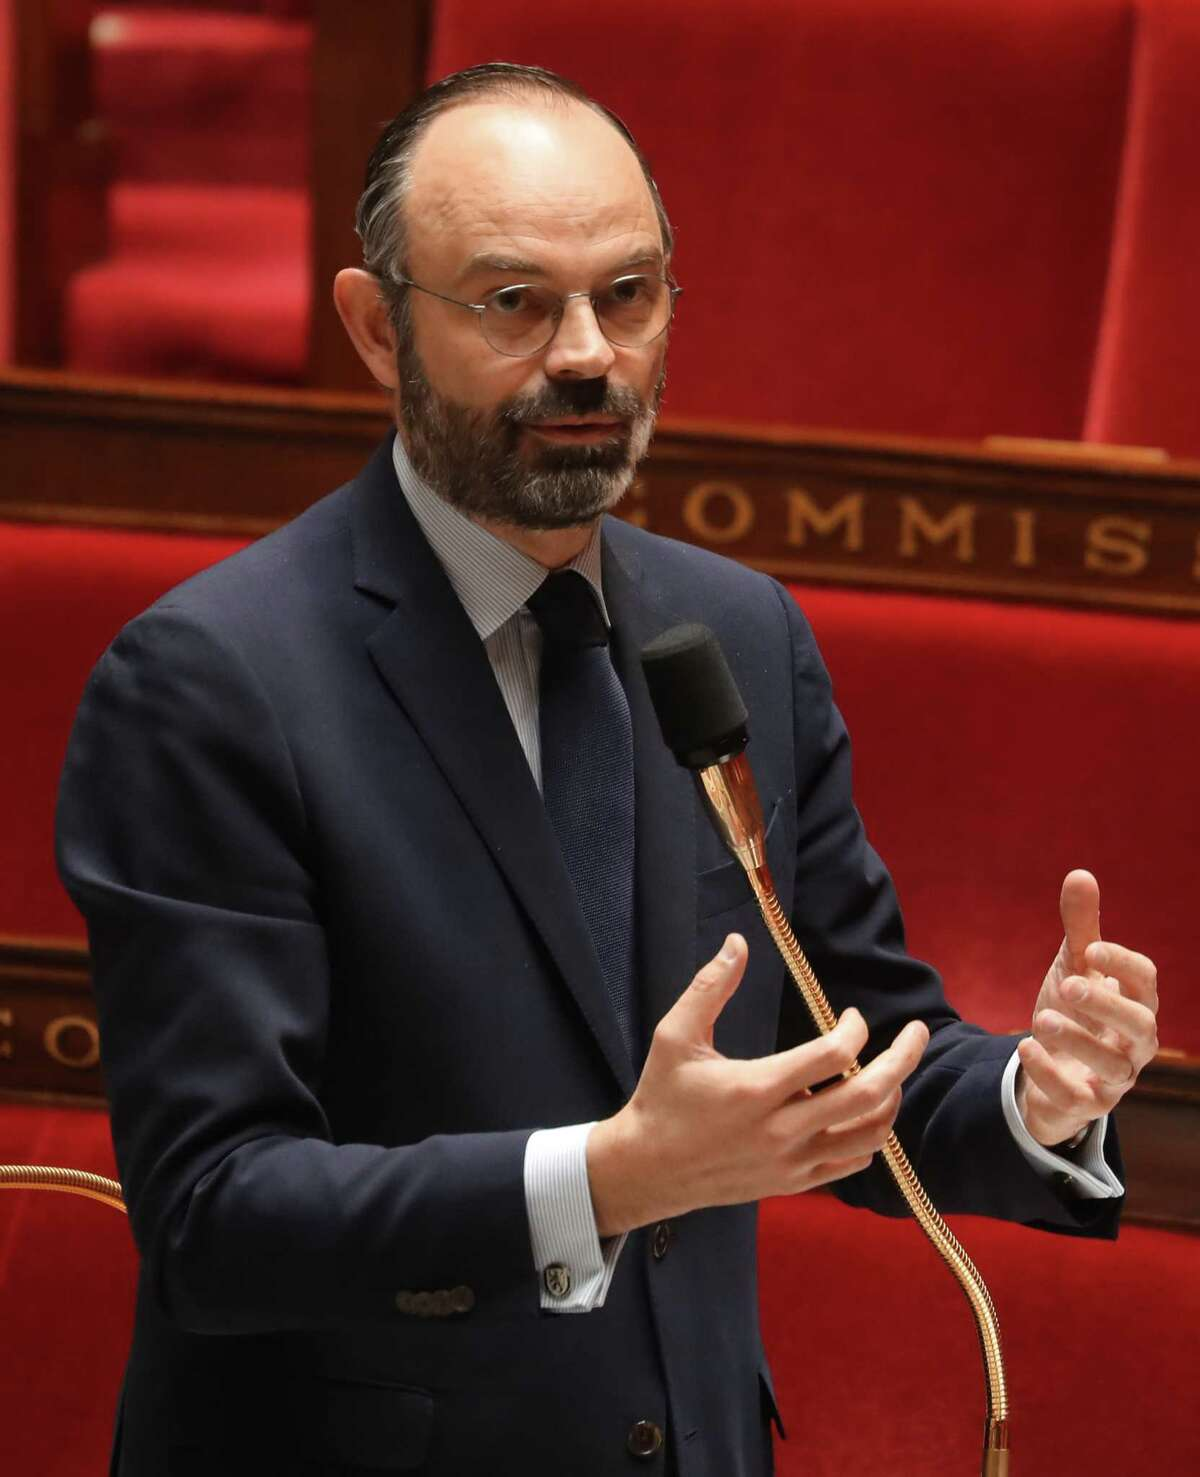 Prime minister Edouard Philippe speaks during an extraordinary session of questions to the government at the National Assembly in Paris on March 19, 2020 as Parliament resumes with limited number of MPs for urgent matters linked to the novel coronavirus (COVID-19). - From midday on March 17, French have been confined to their homes. France is scrambling to contain the outbreak of the virus that has killed over 260 and infected more than 9,100 in the country. (Photo by Ludovic MARIN / POOL / AFP) (Photo by LUDOVIC MARIN/POOL/AFP via Getty Images)